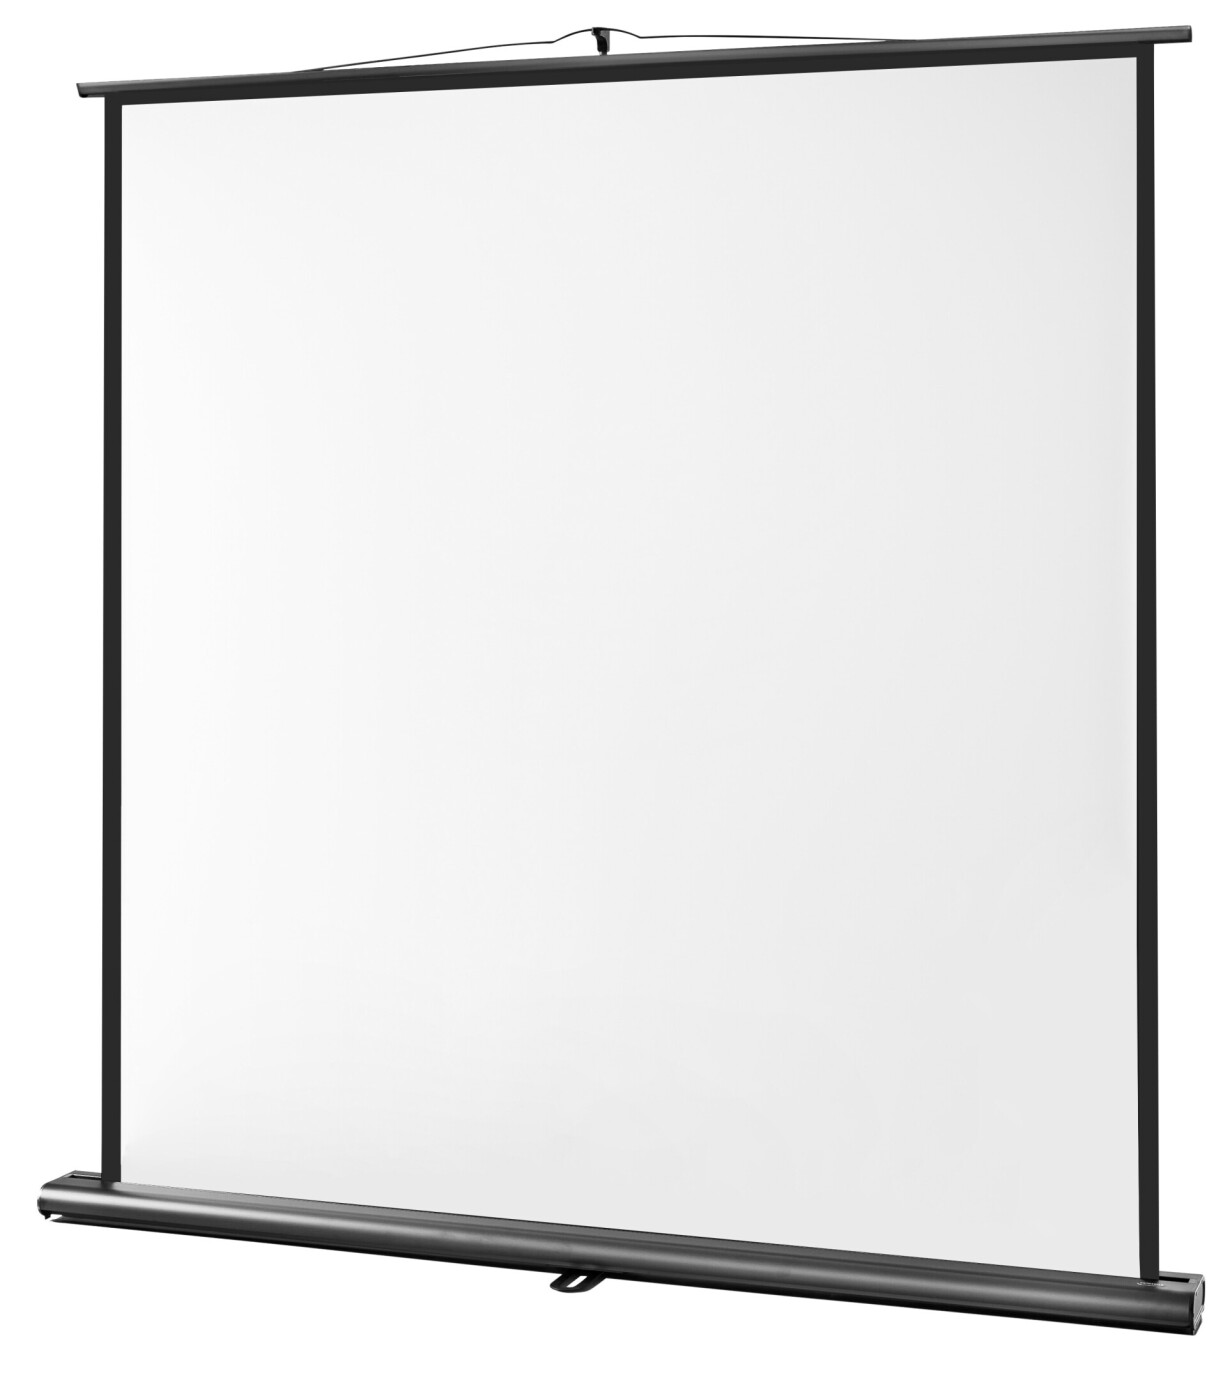 celexon screen Ultramobile Professional 200 x 200cm